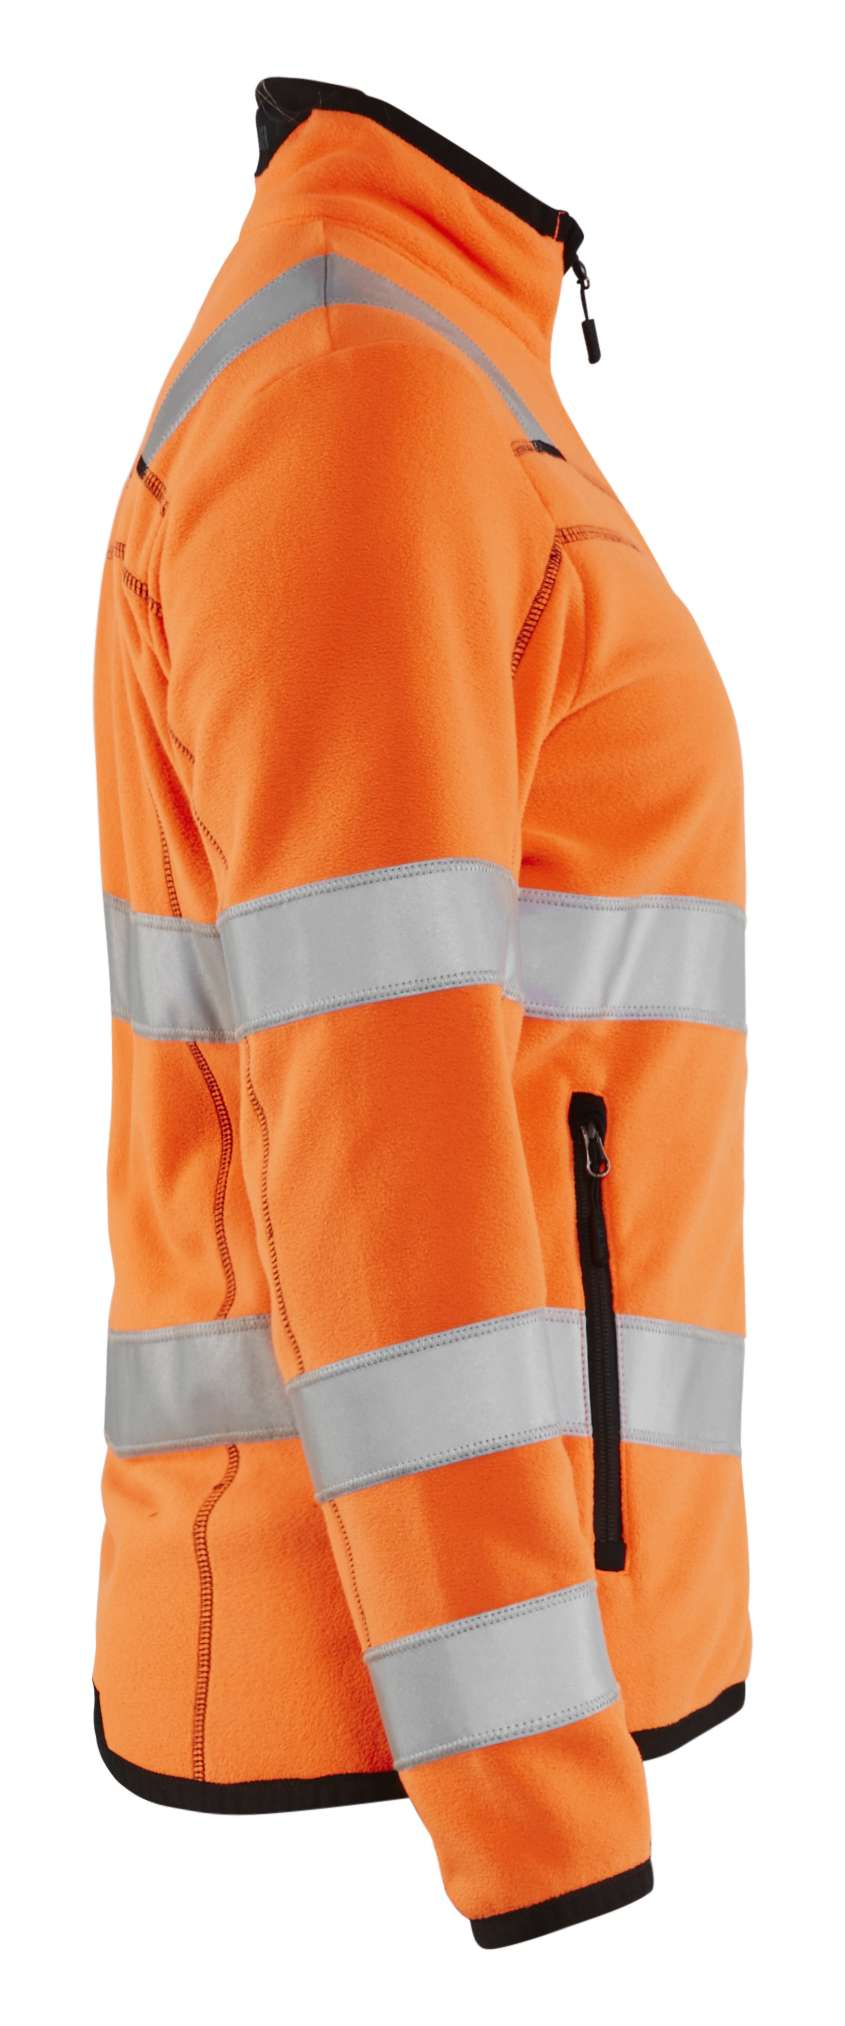 Blaklader Dames fleece vesten 49661010 High Vis fluo-oranje(5300)